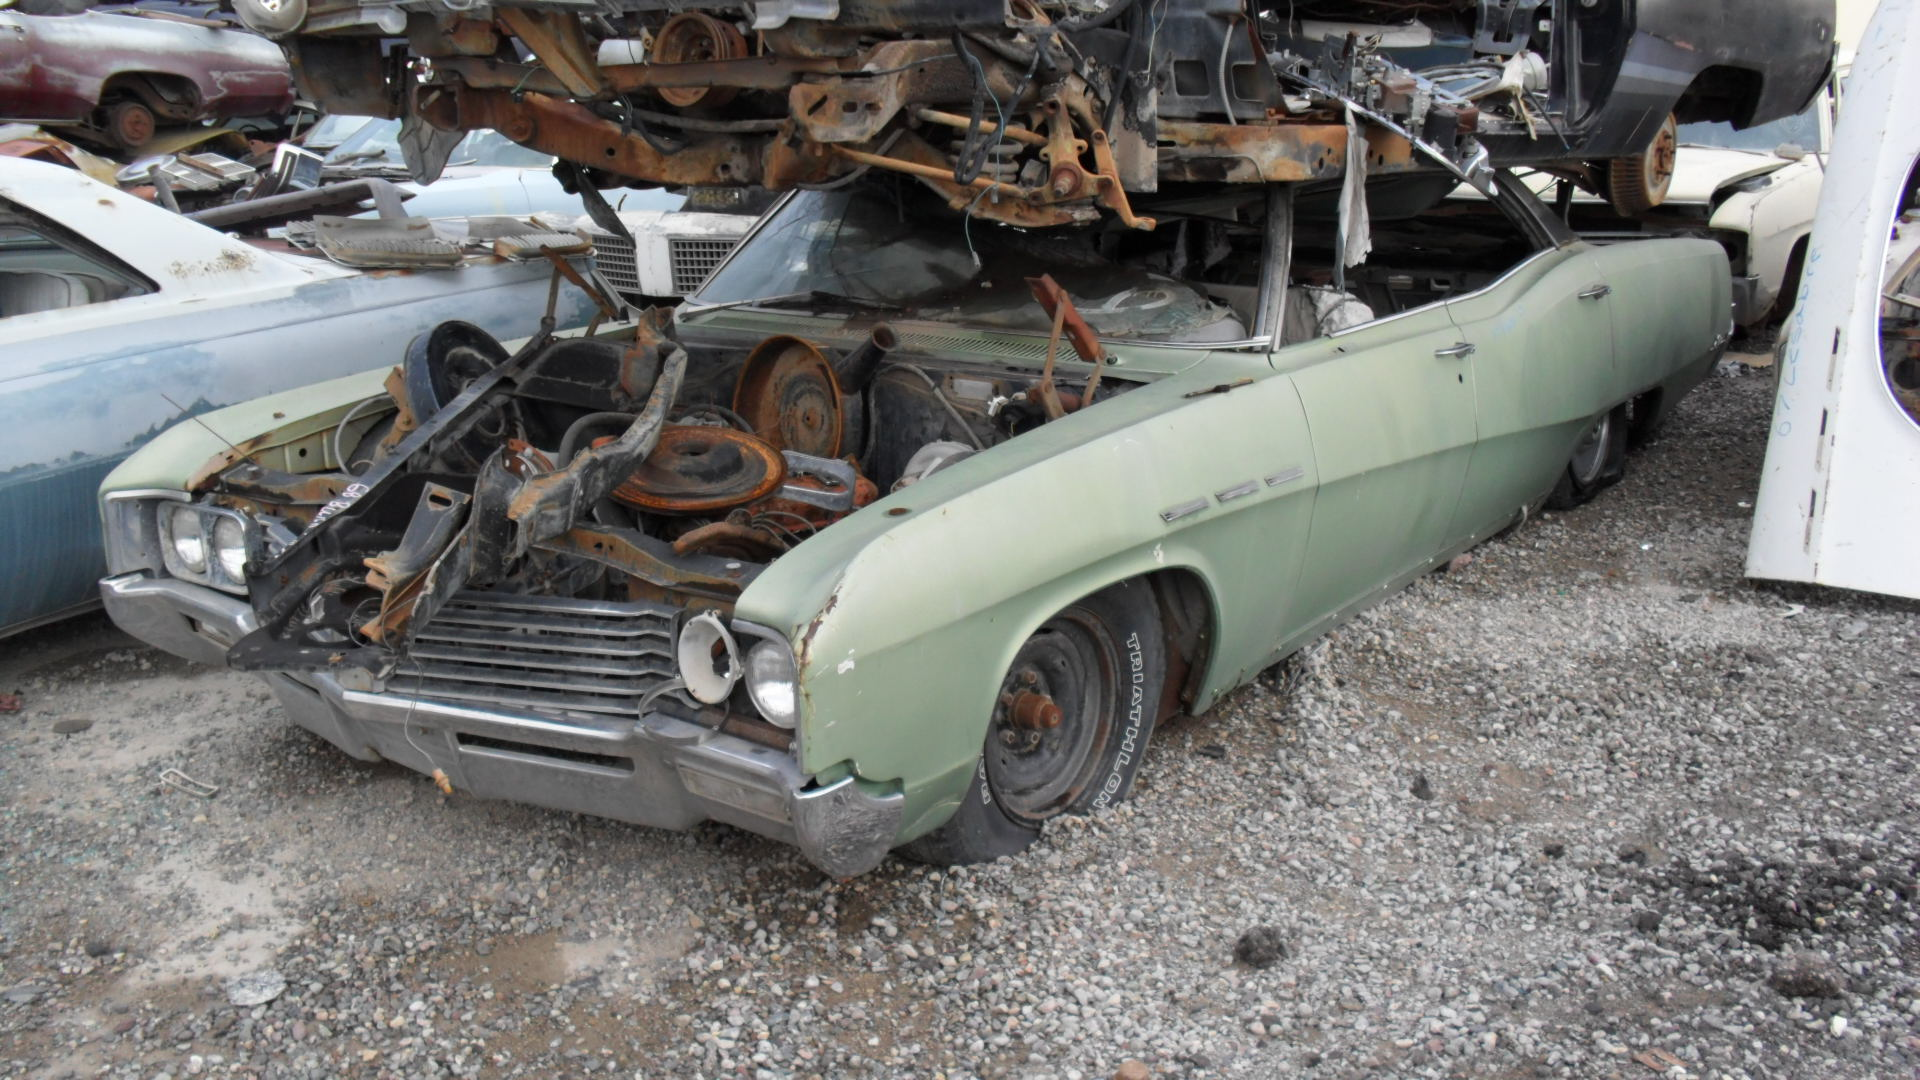 item window new sale for full sold and july buick in lesabre size vehicles auction